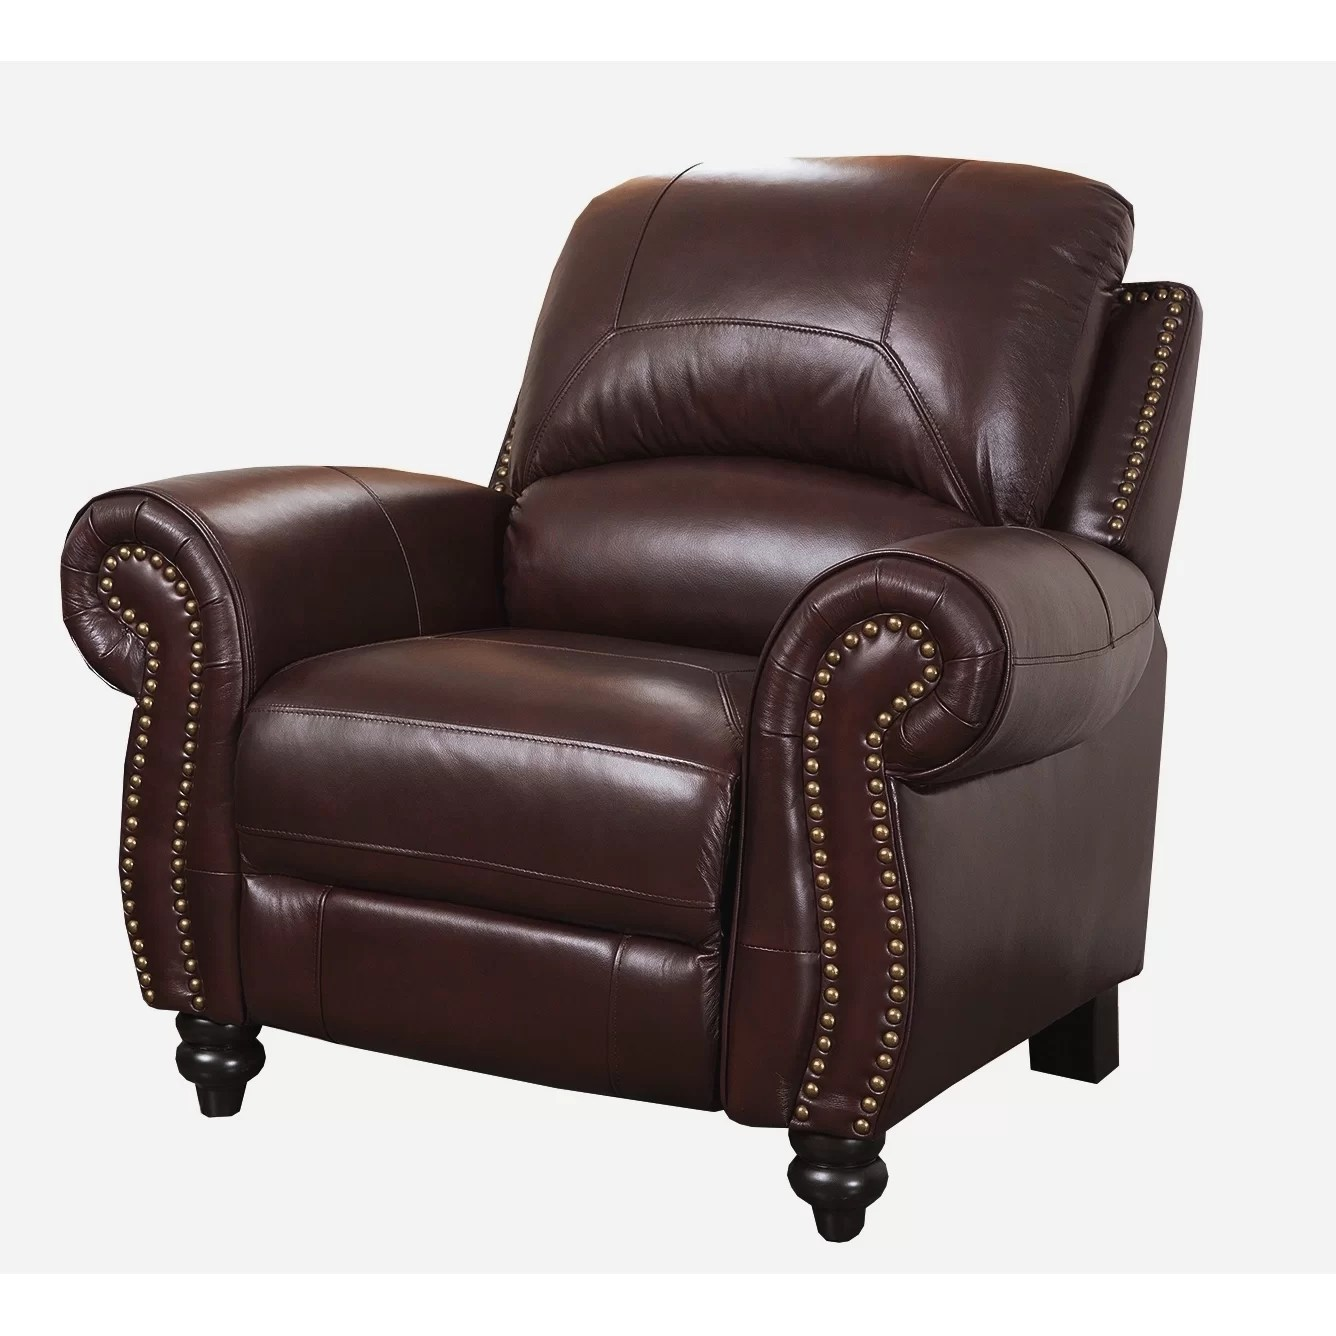 reclining arm chair panton review darby home co kahle leather recliner and reviews